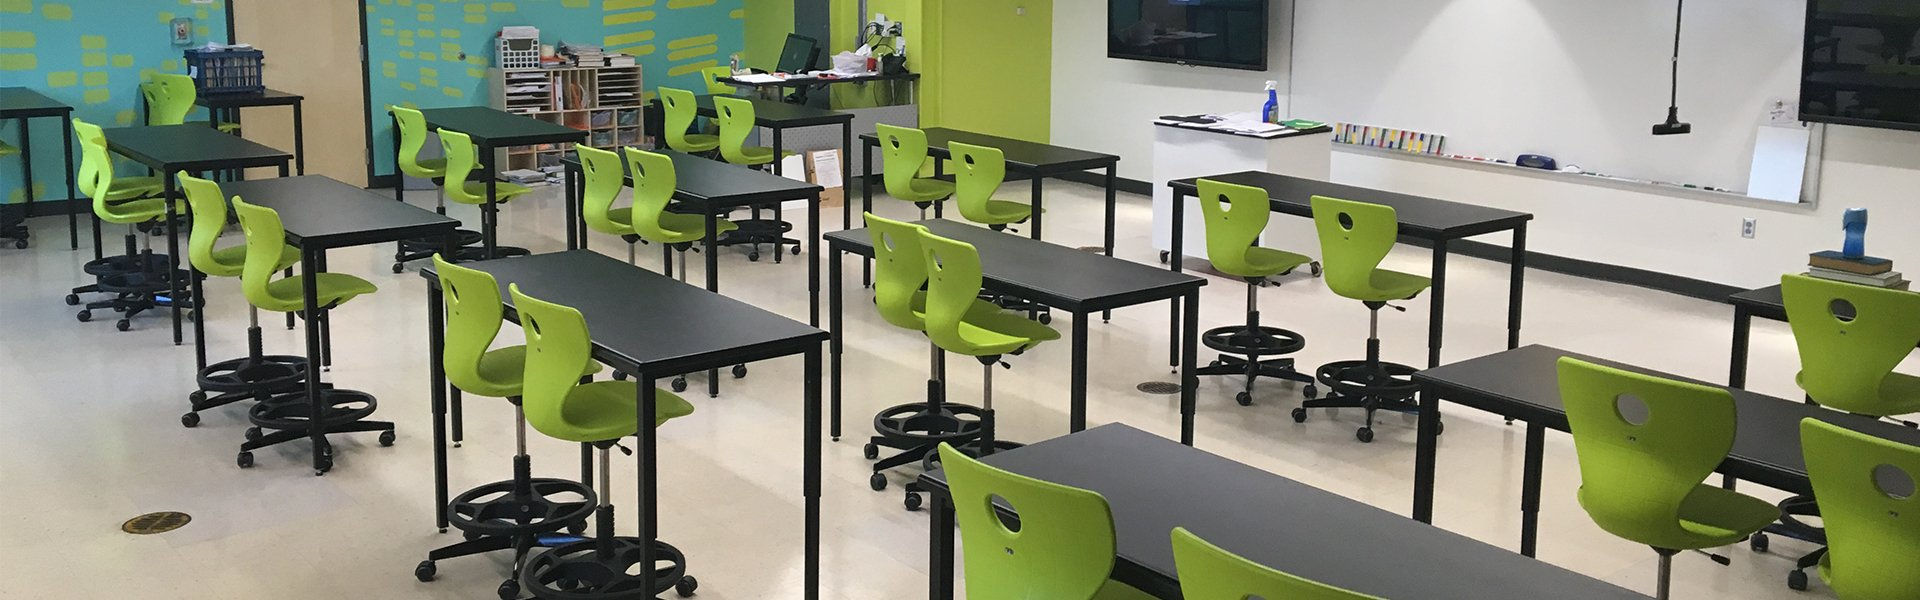 Corilam Lab Classroom Adjustable Height Desks